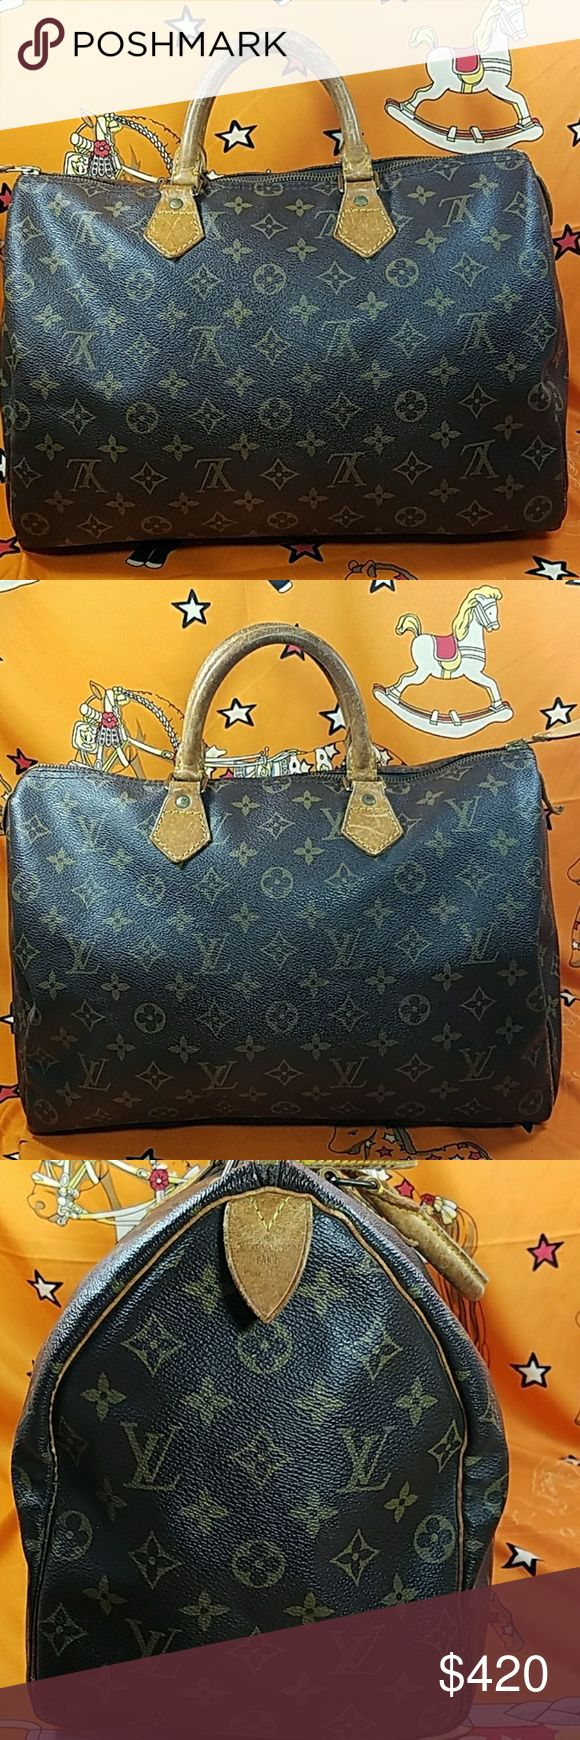 "Authentic Louis Vuitton Monogram Speedy 35 The outer leather is in good condition. The leather trims and handles  (drop about 5"") showed sign of used with scratches, stains & darkened. The zipper pull tag is replaced. Inside bag has some stains on the bottom. Date code SP1912. It made in France. Dimension:(about) 10.5, 14, & 8. No trade please Louis Vuitton Bags Satchels"